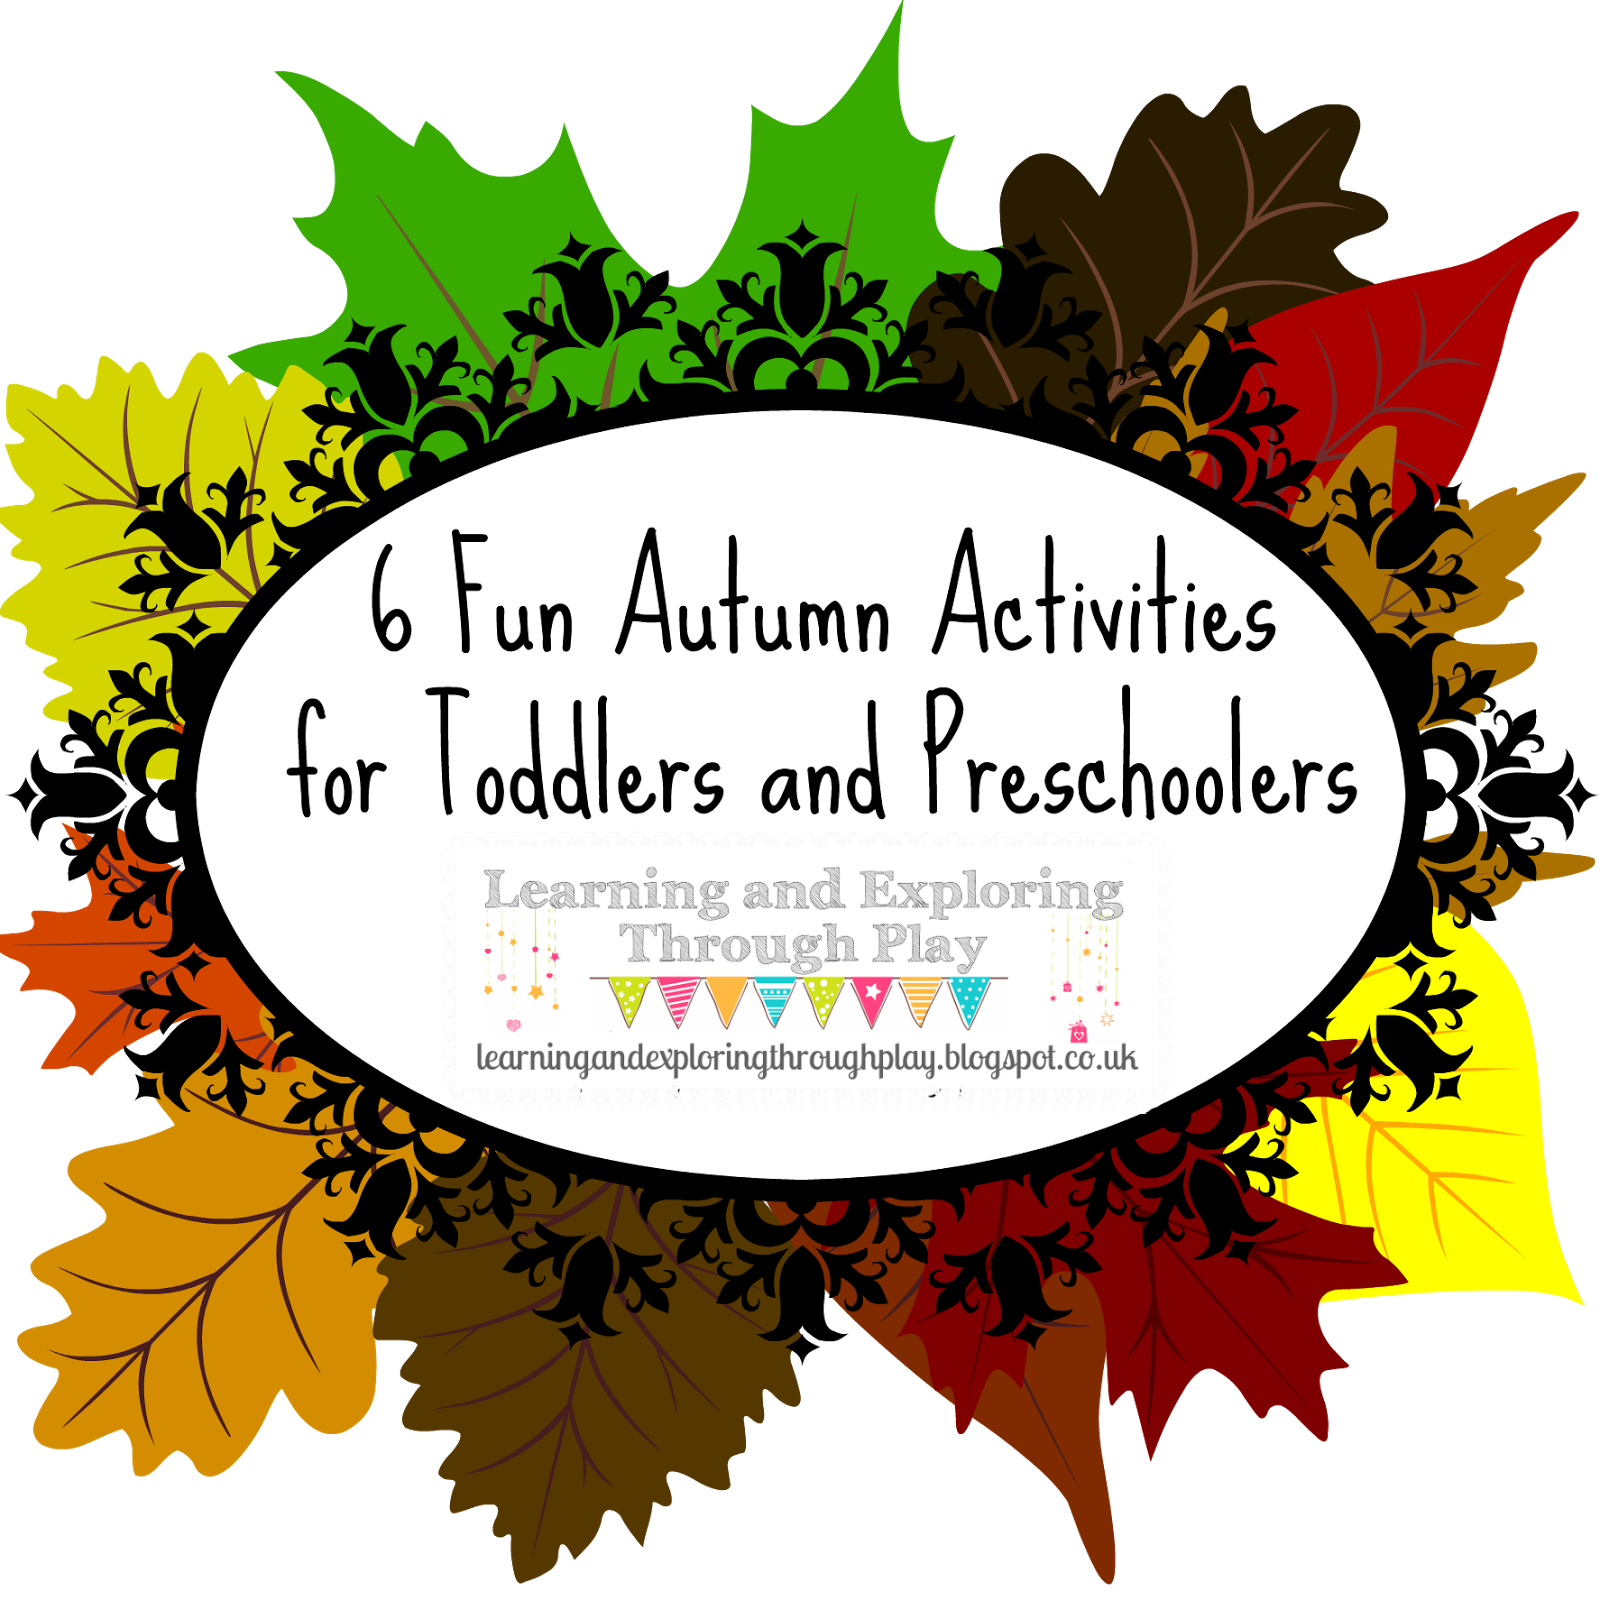 Hedgehog clipart autumn. Learning and exploring through